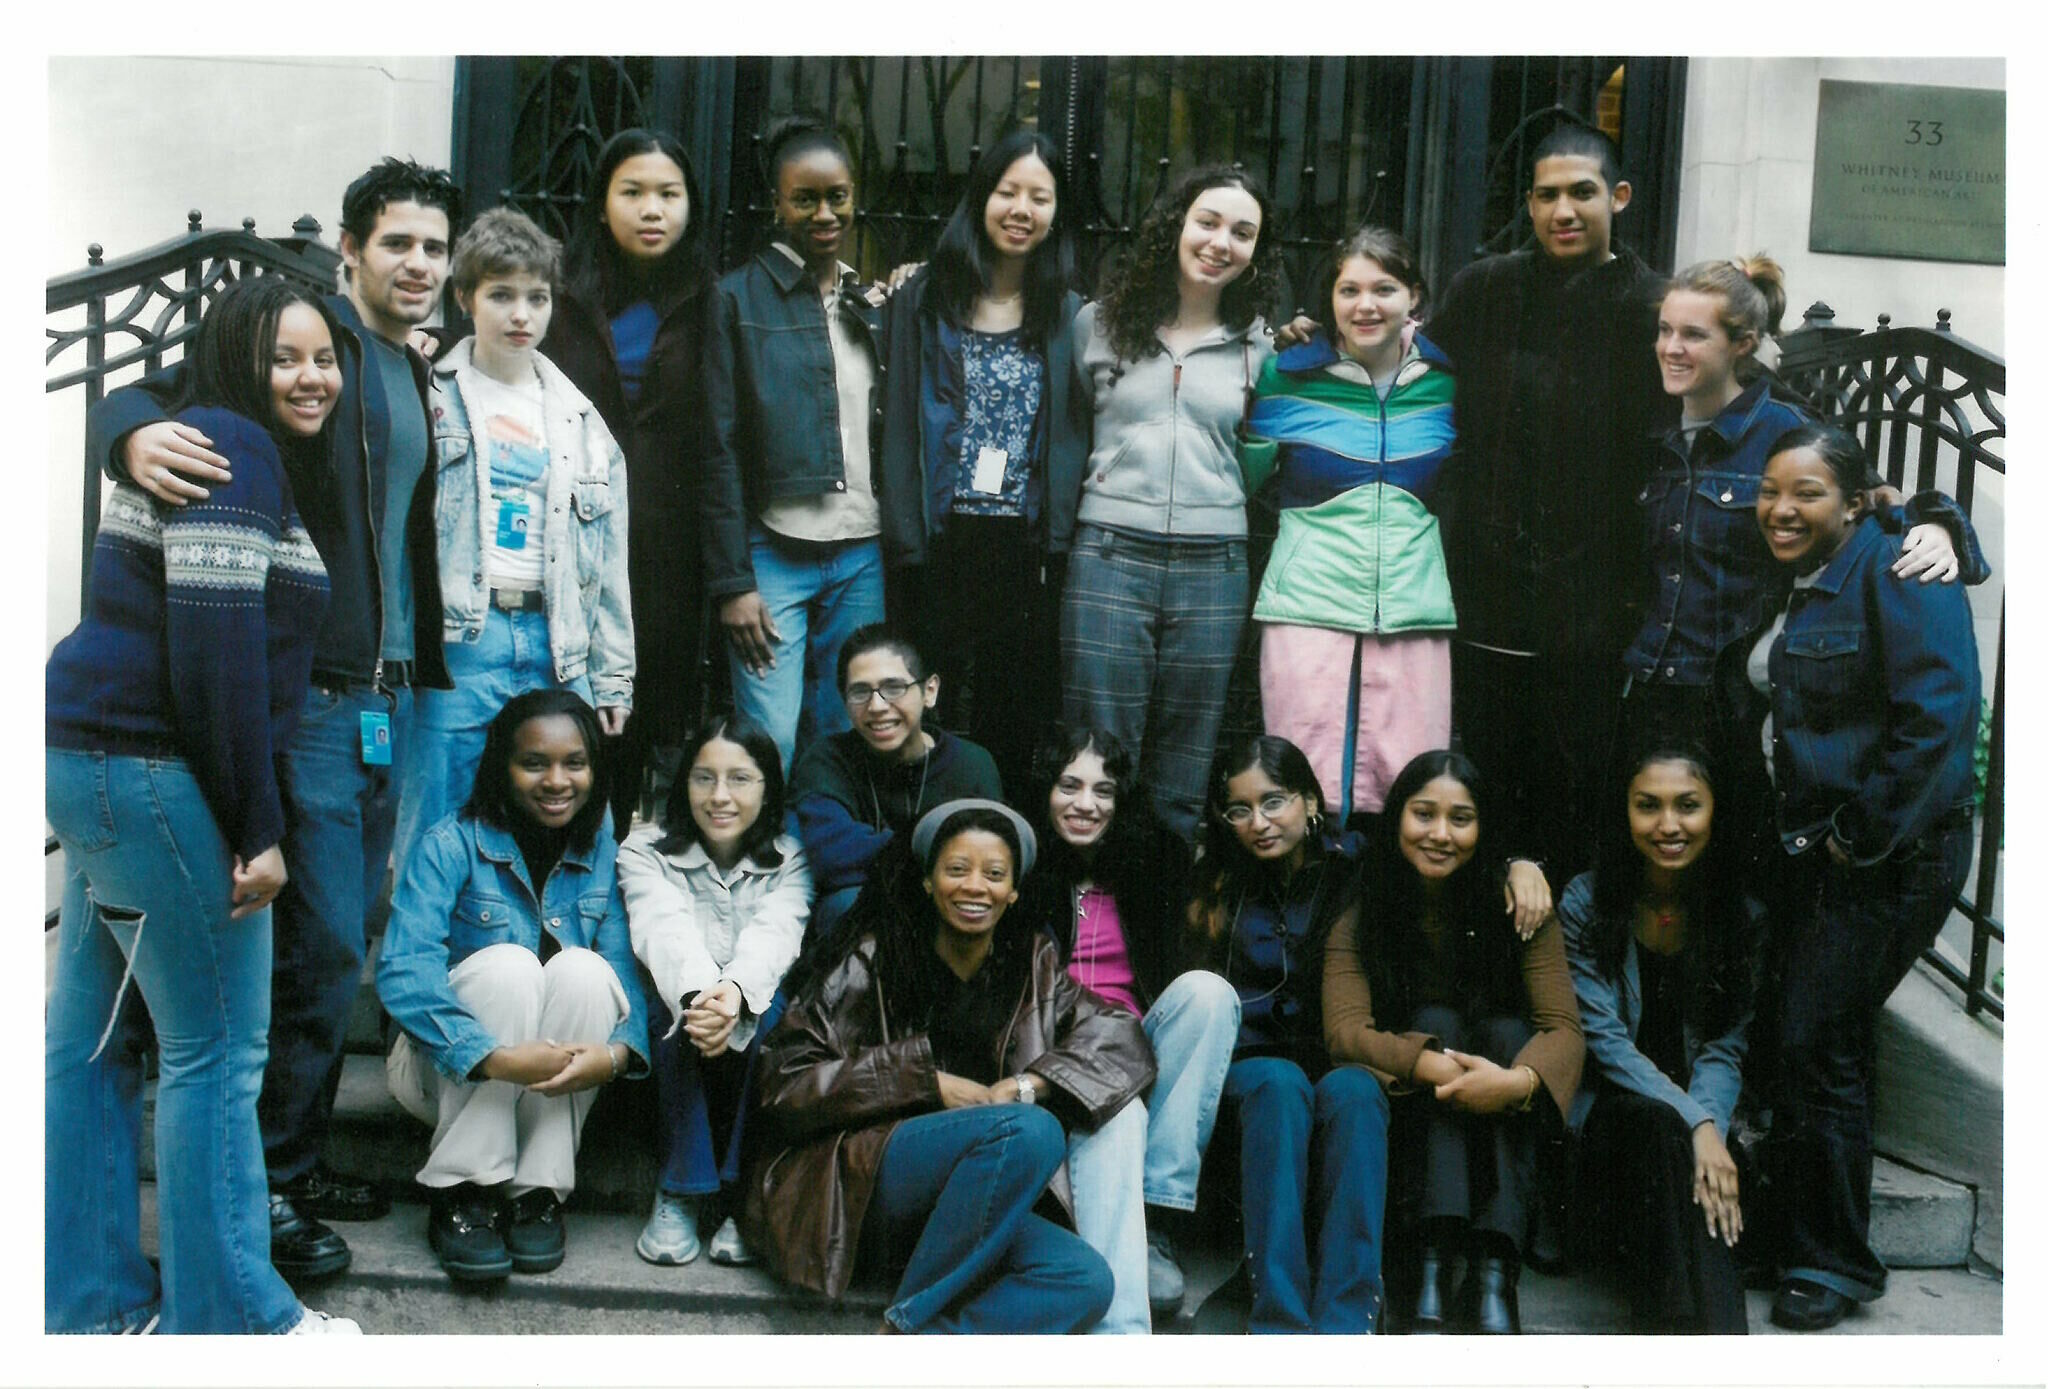 Group photo of Youth Insight Participants at the Whitney Museum in 2001-2002.